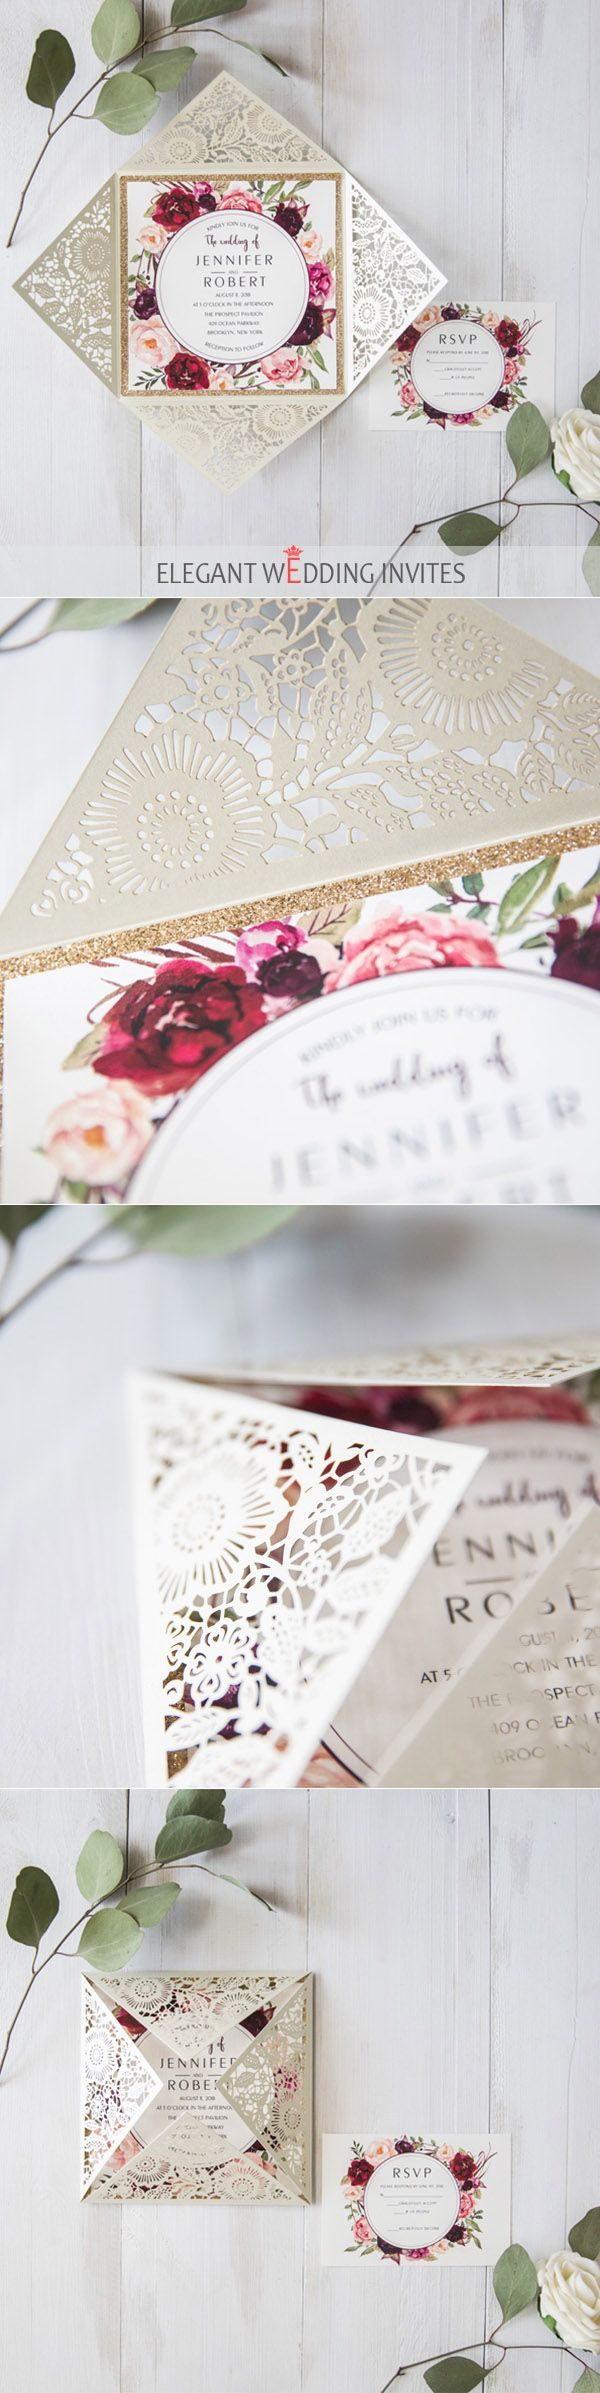 Ivory laser cut floral unique wedding invitations with glittery ...